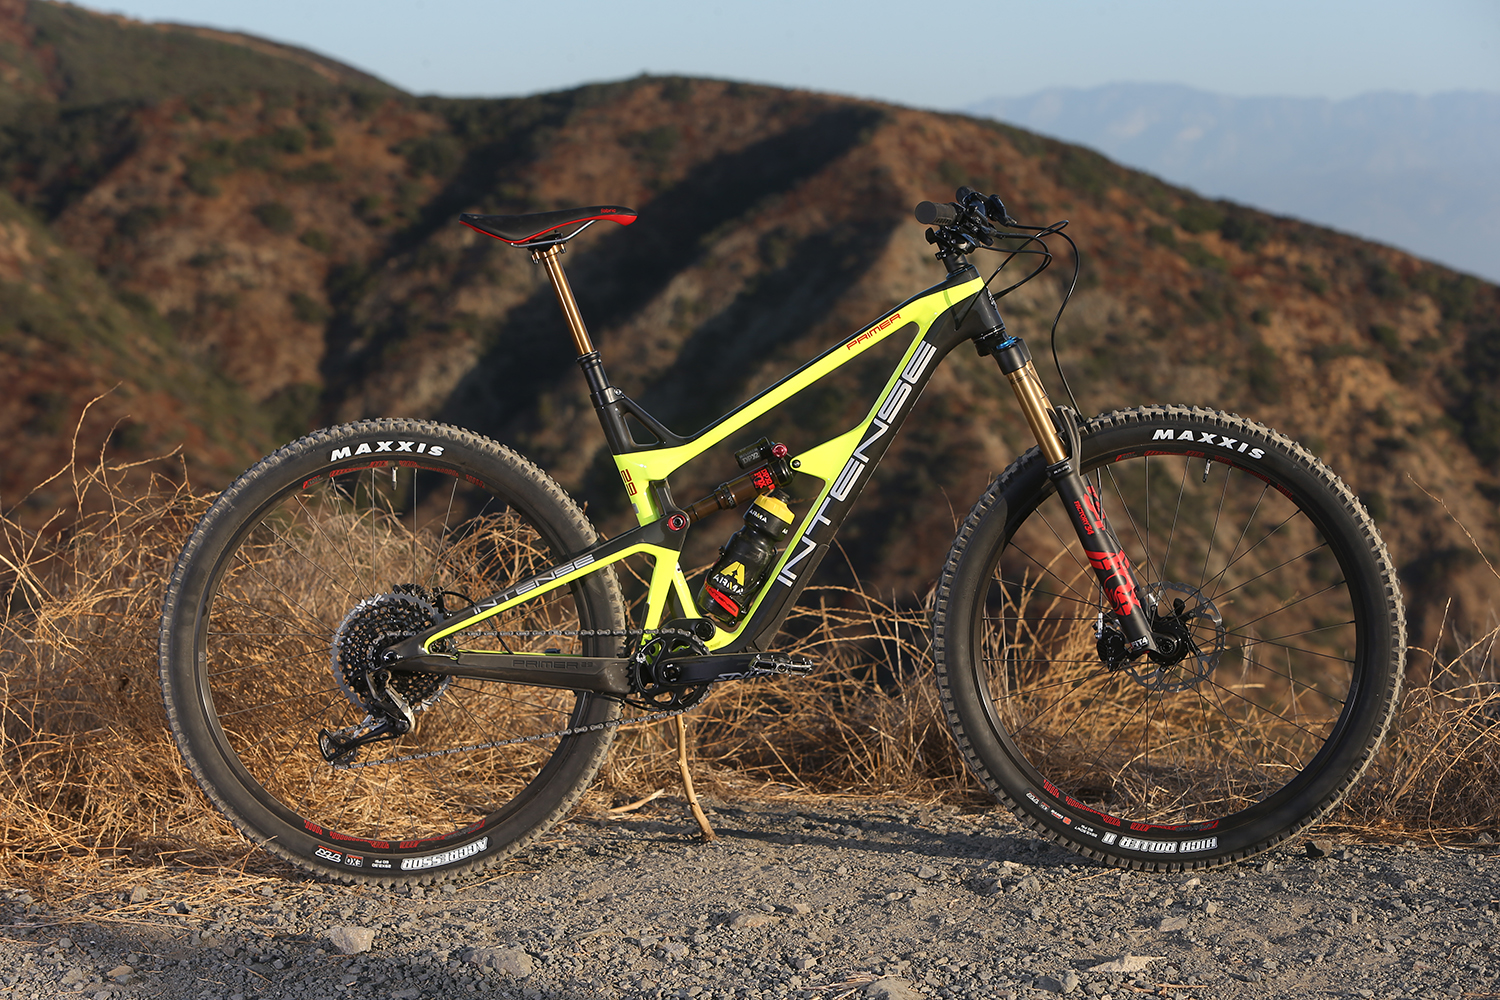 Trail Tested Intense Primer 29 Elite Build Swapmoto Live Intense cycles has a brand new primer trail mountain bike which is offered in three different wheel sizes. trail tested intense primer 29 elite